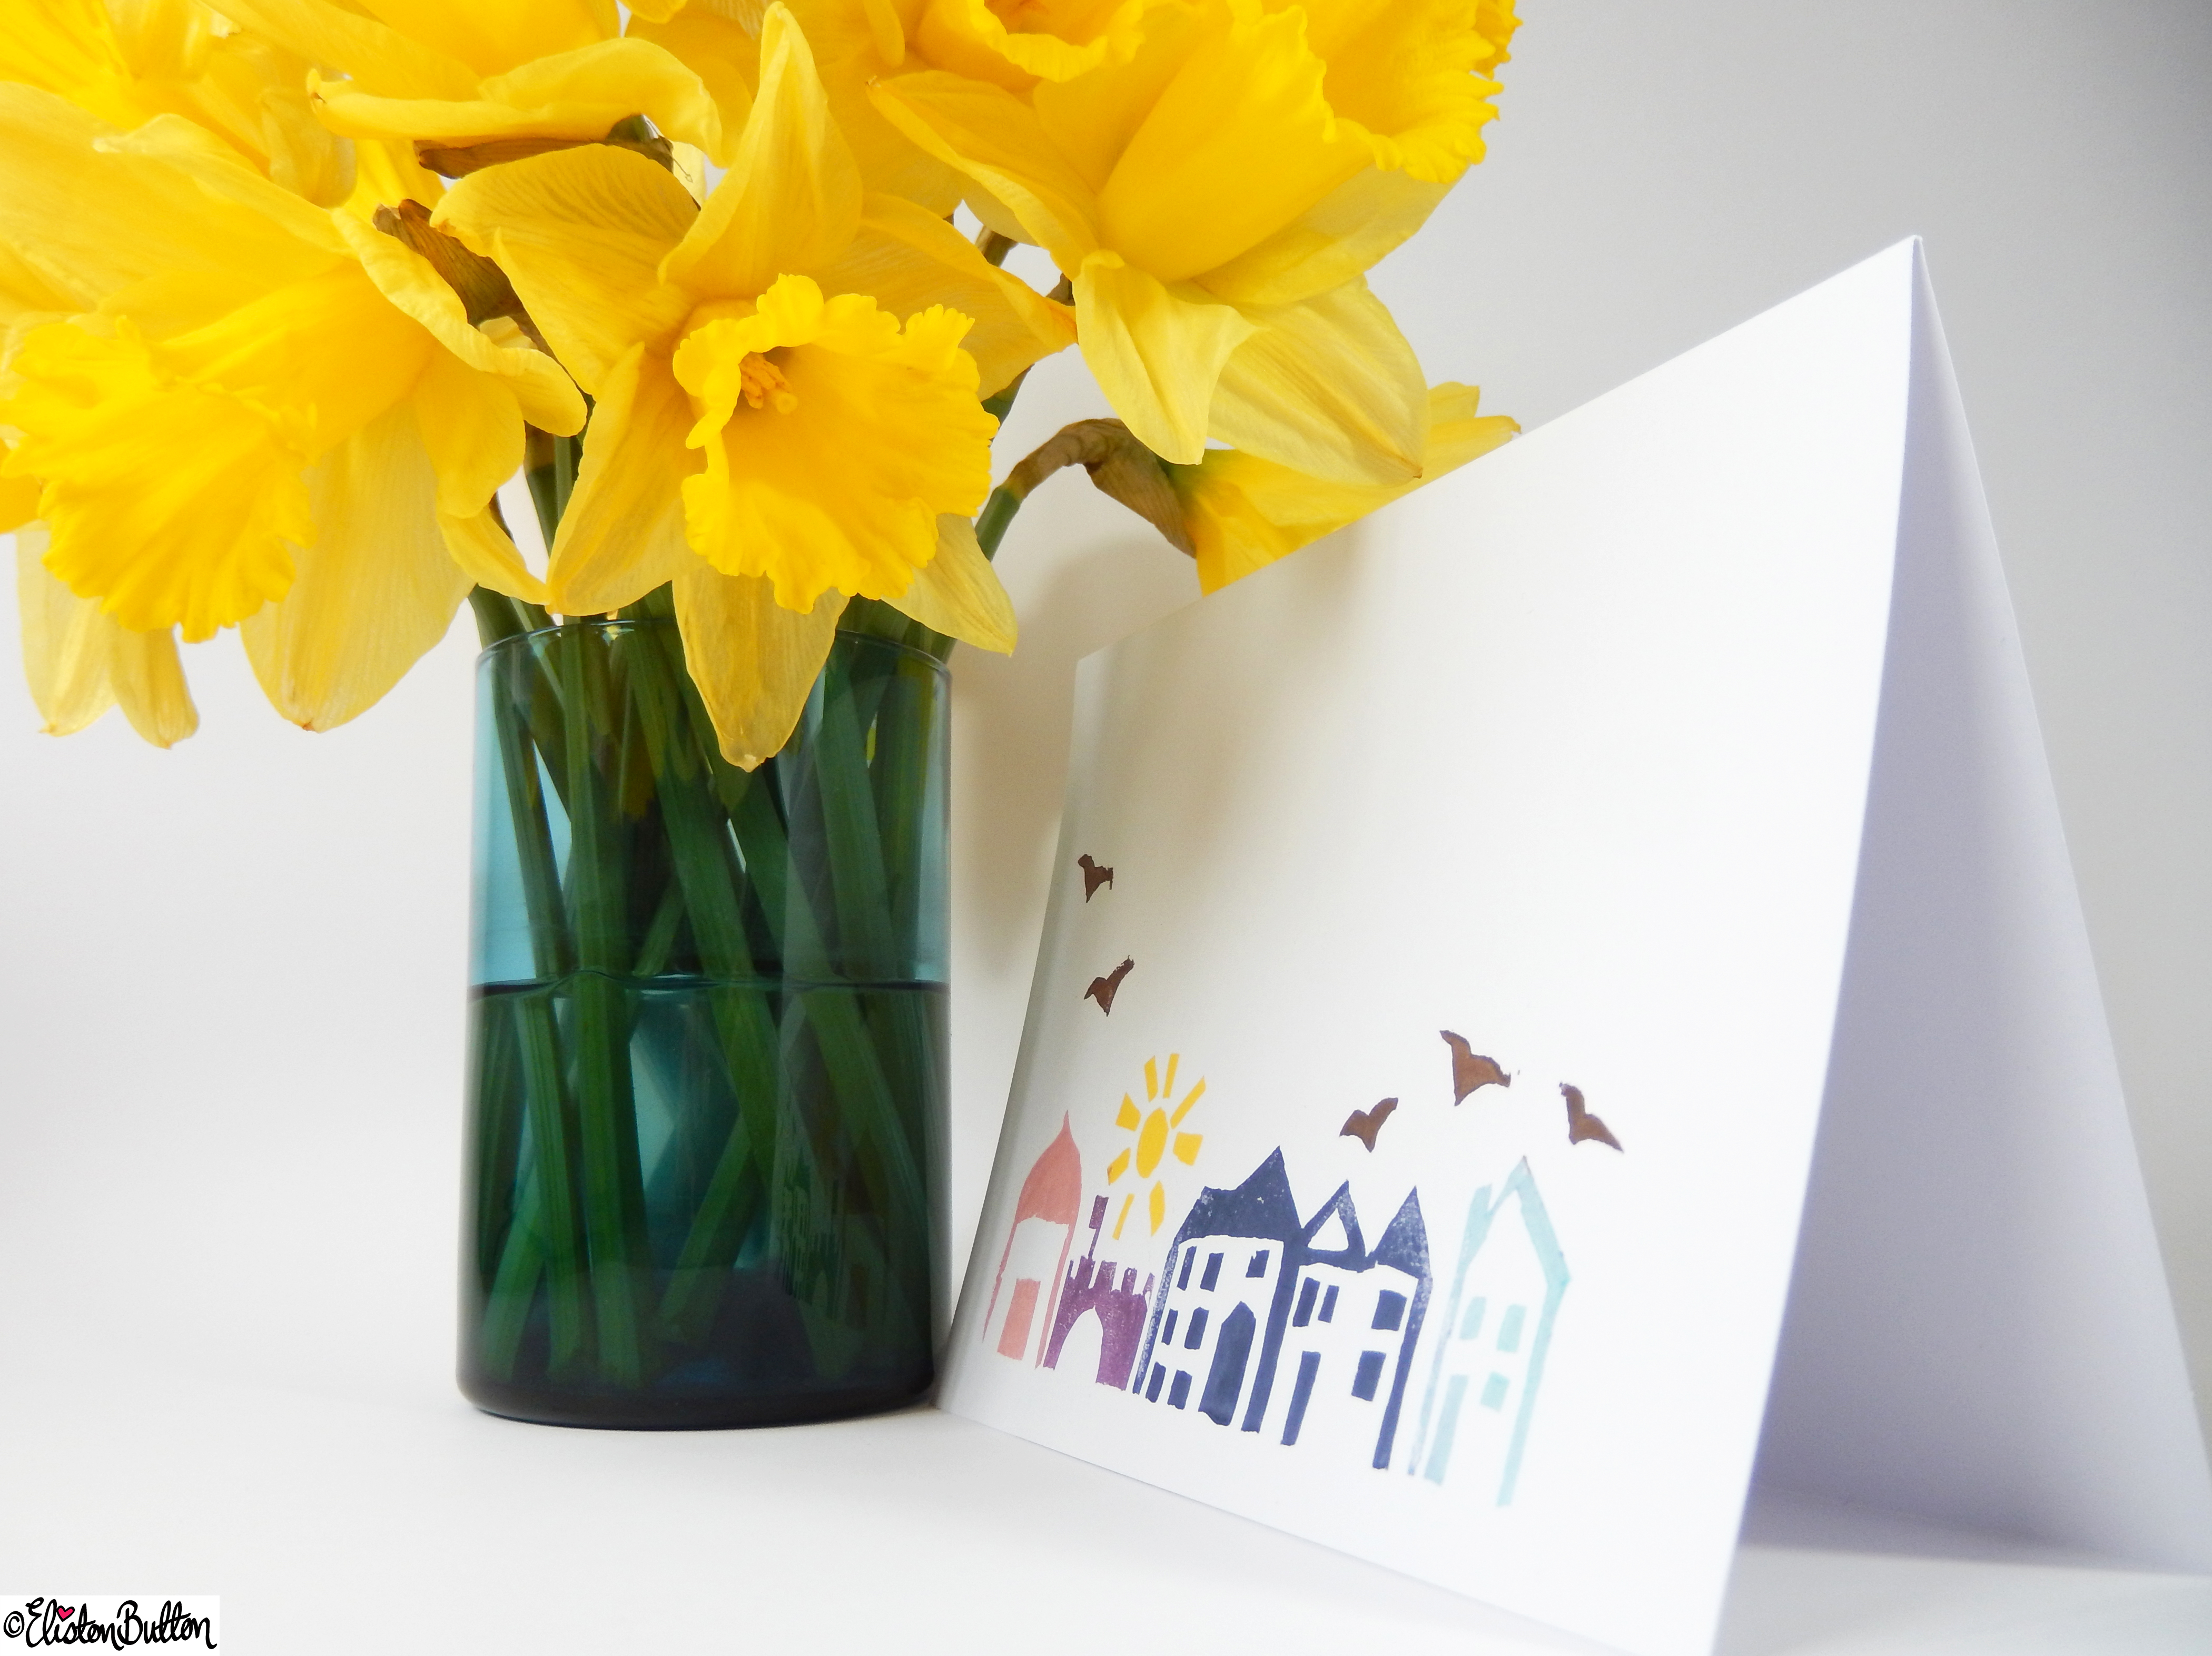 Hand Printed Streetscape Cards - Side view with Daffodils - Create 28 - No. 13 - Hand Printed Streetscape Cards at www.elistonbutton.com - Eliston Button - That Crafty Kid – Art, Design, Craft & Adventure.